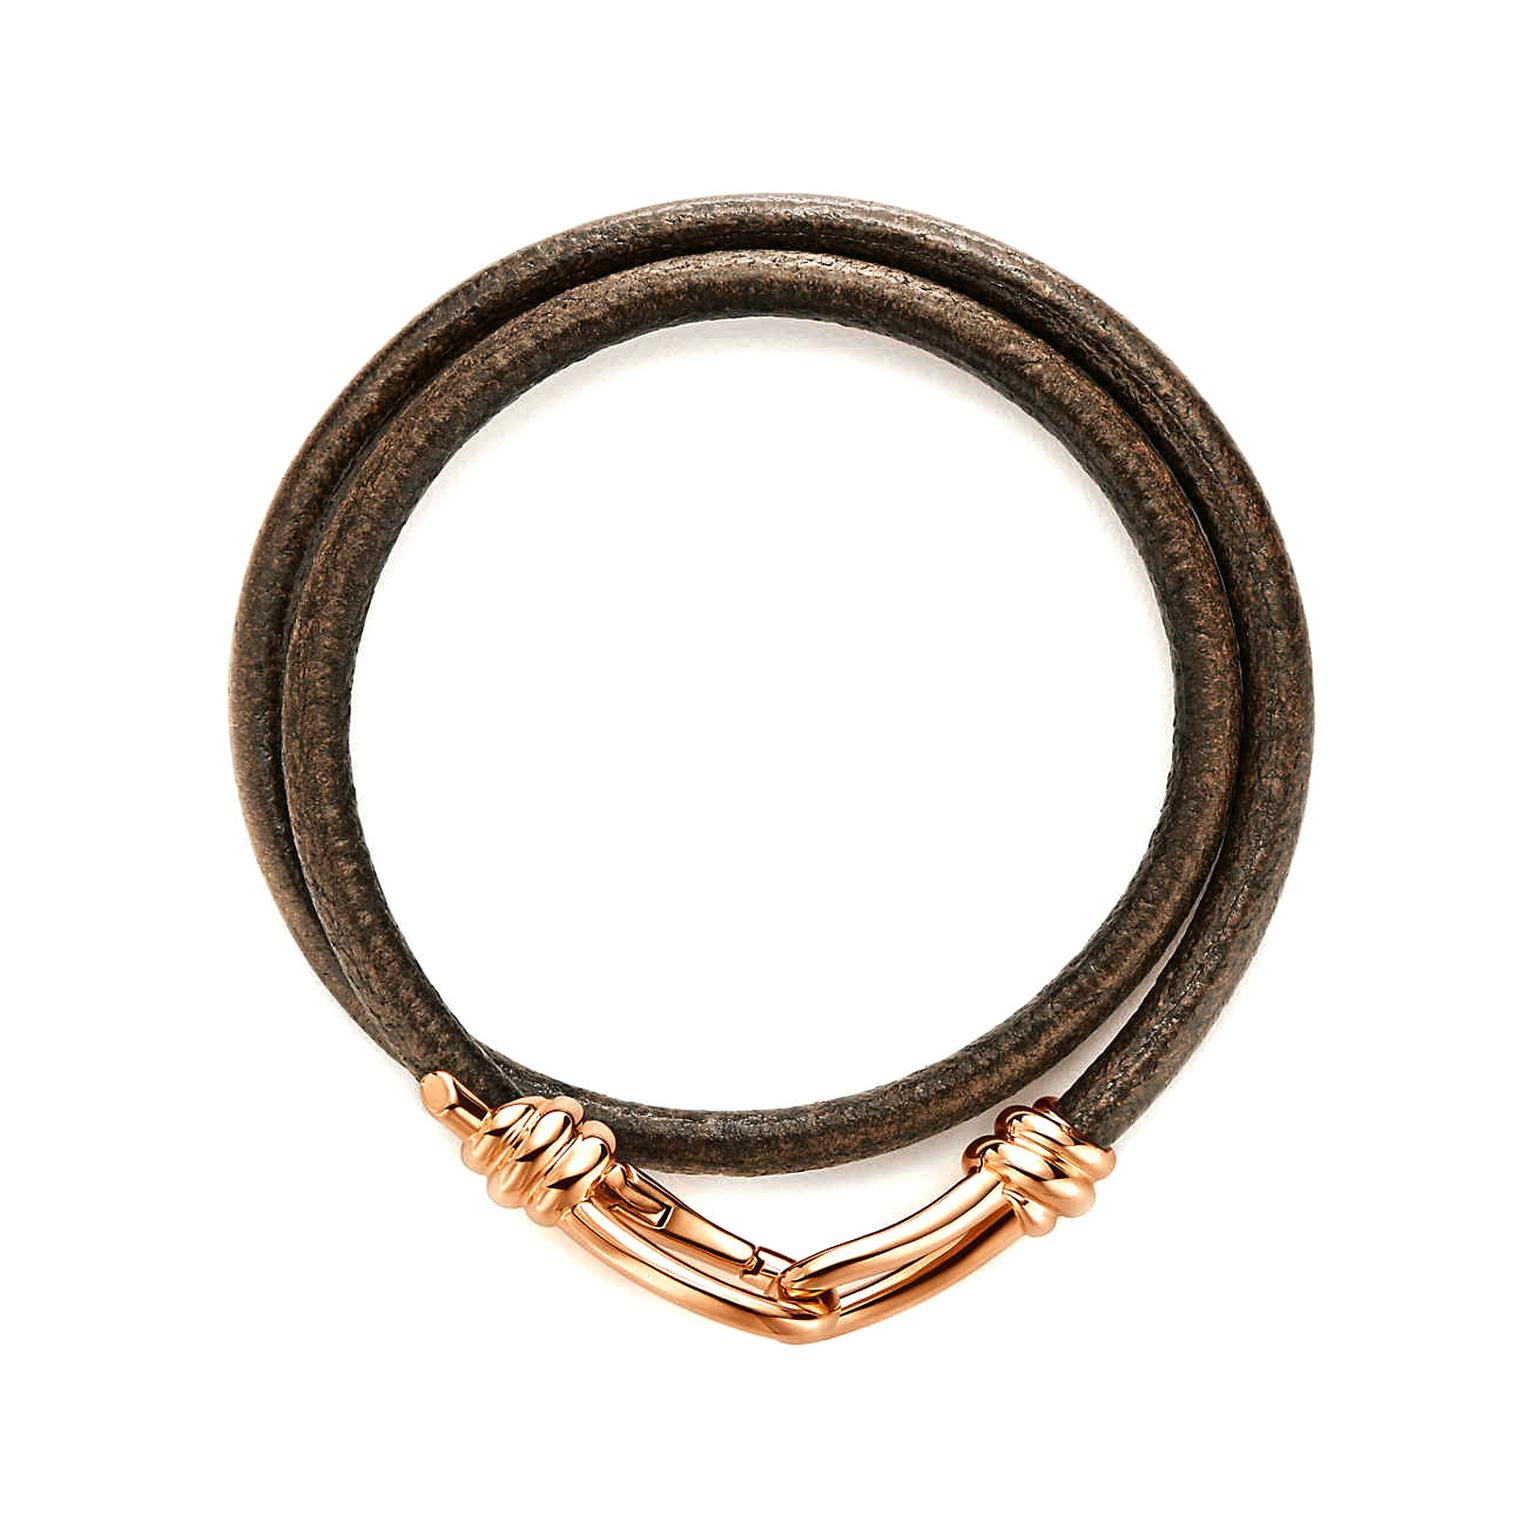 silva jewelry gold shop black leather side clothing jewellery bracelet phoenix akitsune